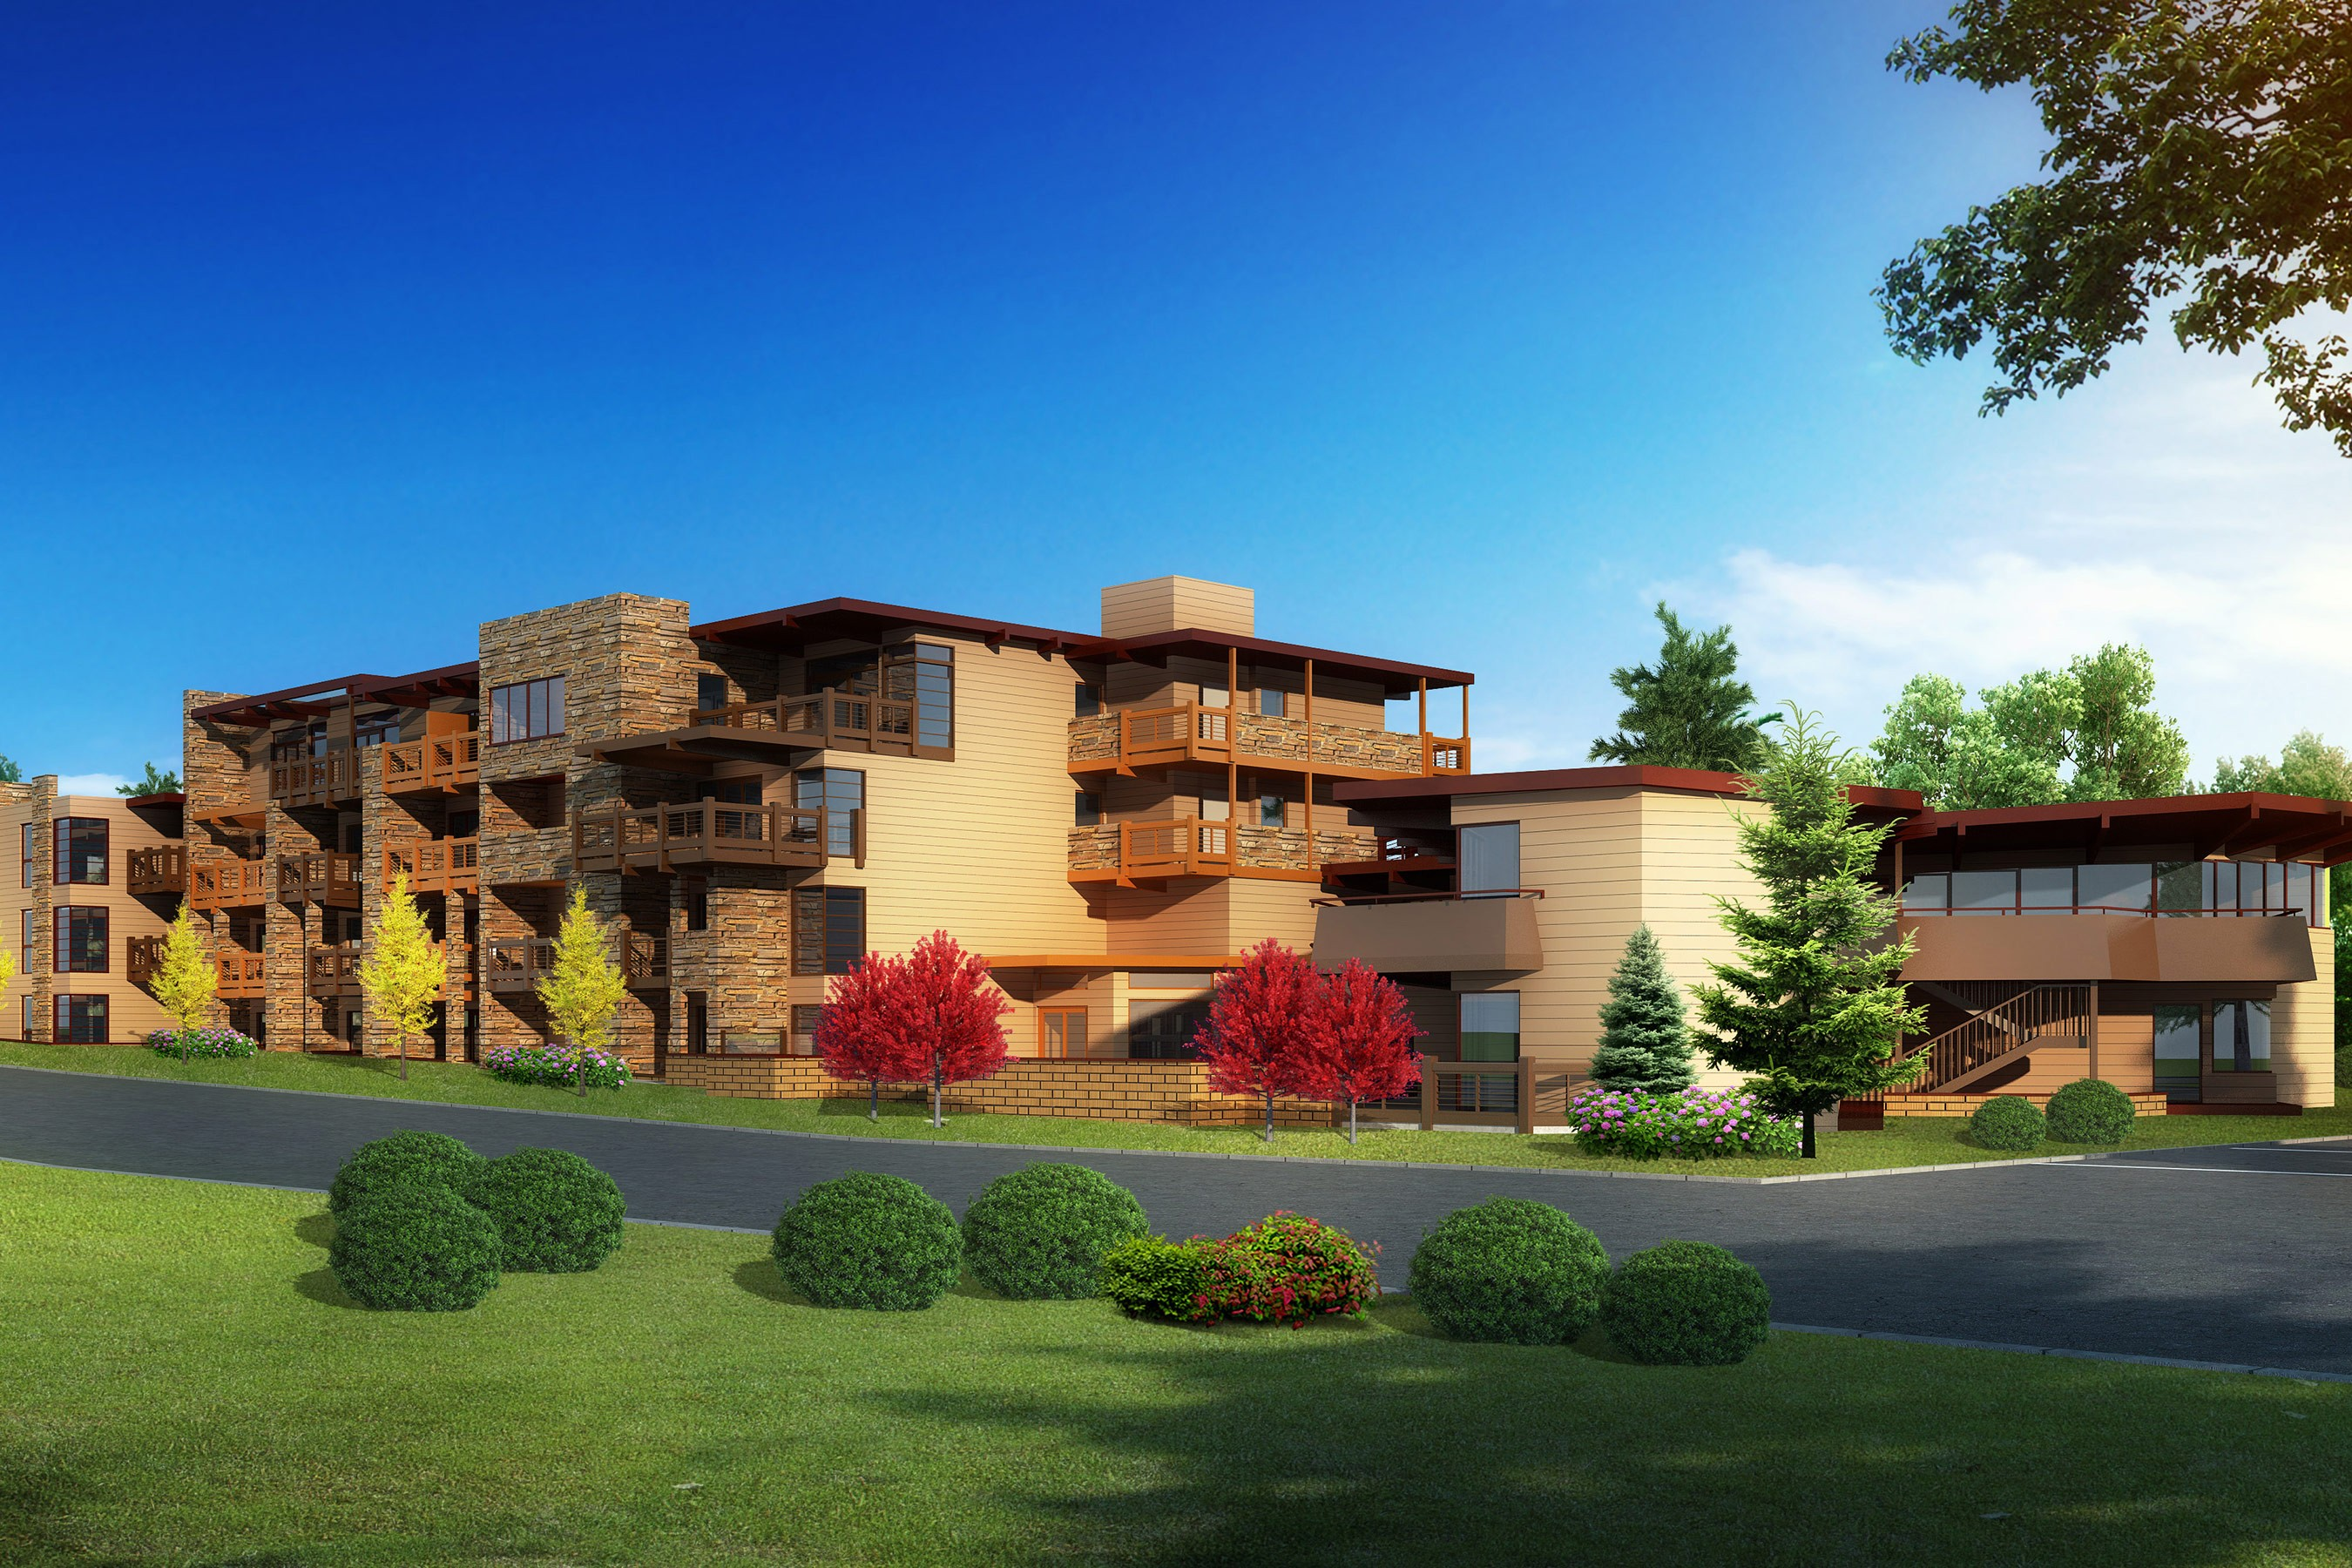 Condominium for Sale at Boomerang Lodge 500 W. Hopkins Avenue Unit 202 Aspen, Colorado, 81611 United States